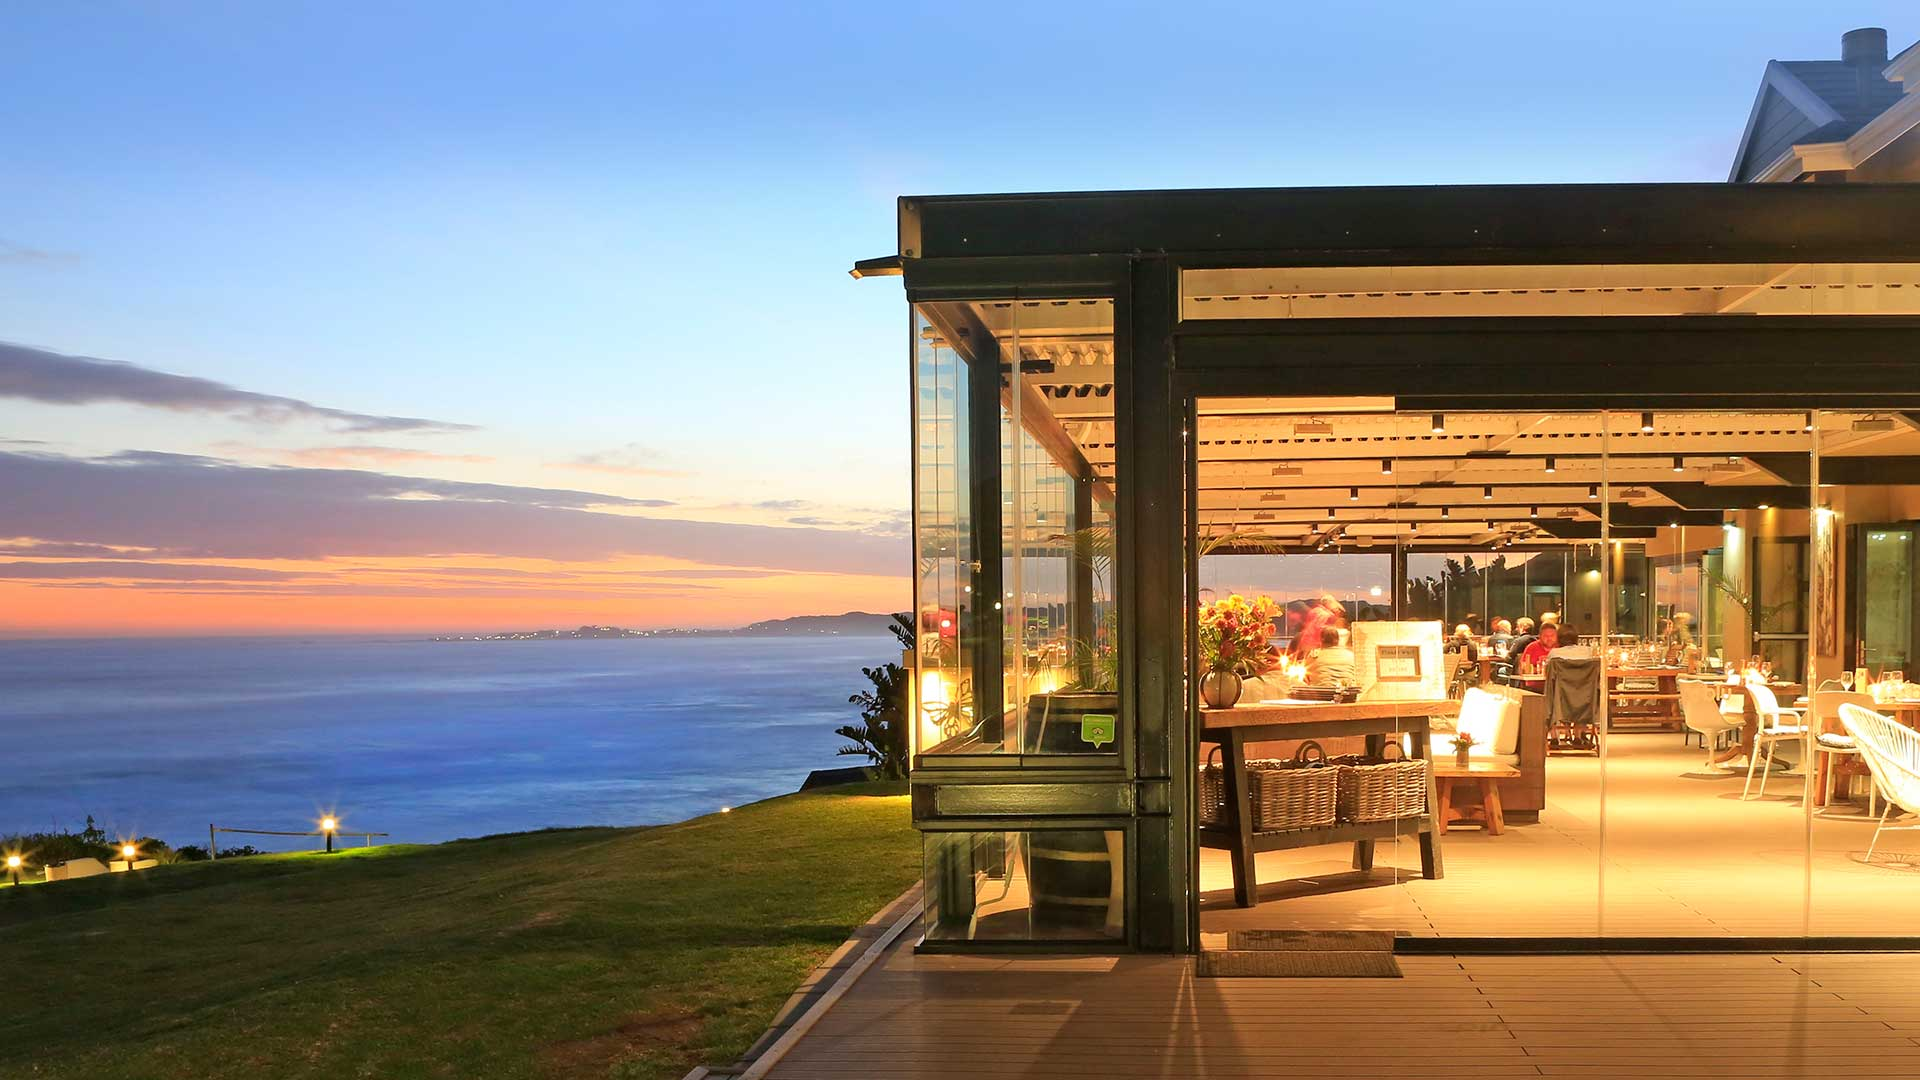 butterfly blu restaurant beachfront offers a great menu and wide selection of food at brento haven brenton on sea knysna pizza